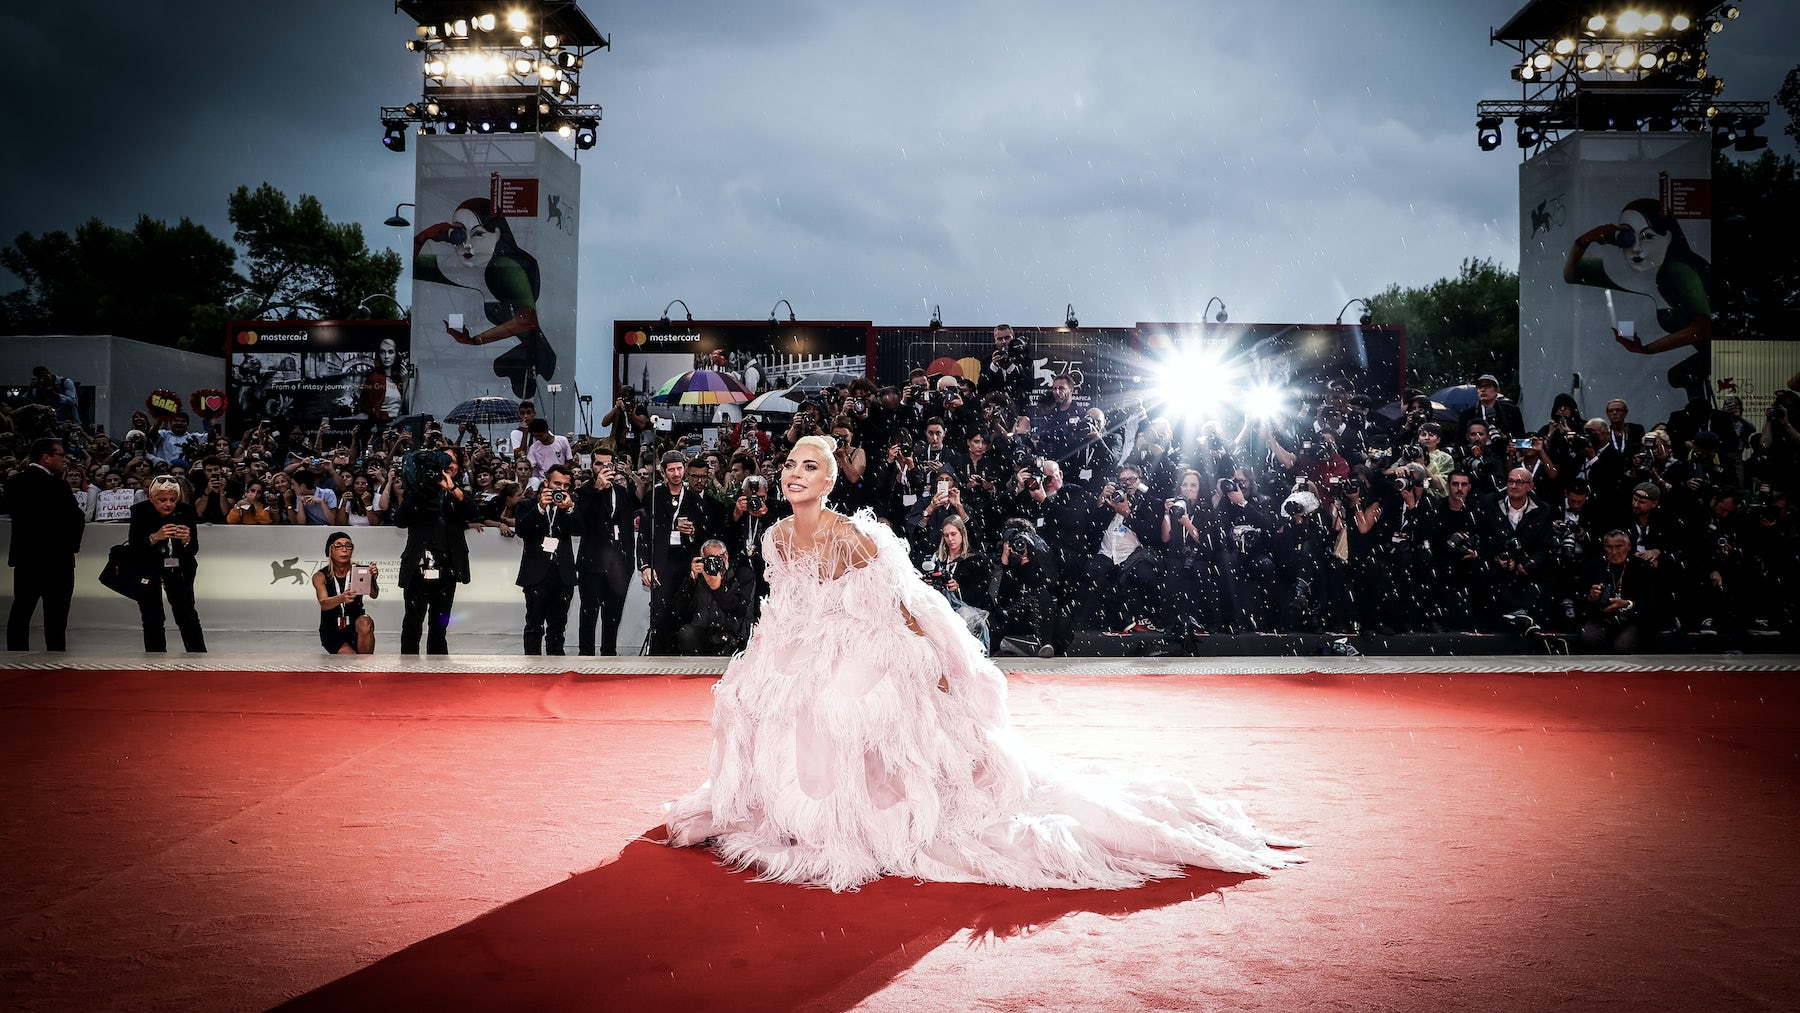 Lady Gaga at 'A Star Is Born' screening at Venice Film Festival Photo: Vittorio Zunino Celotto | Source: Getty Images